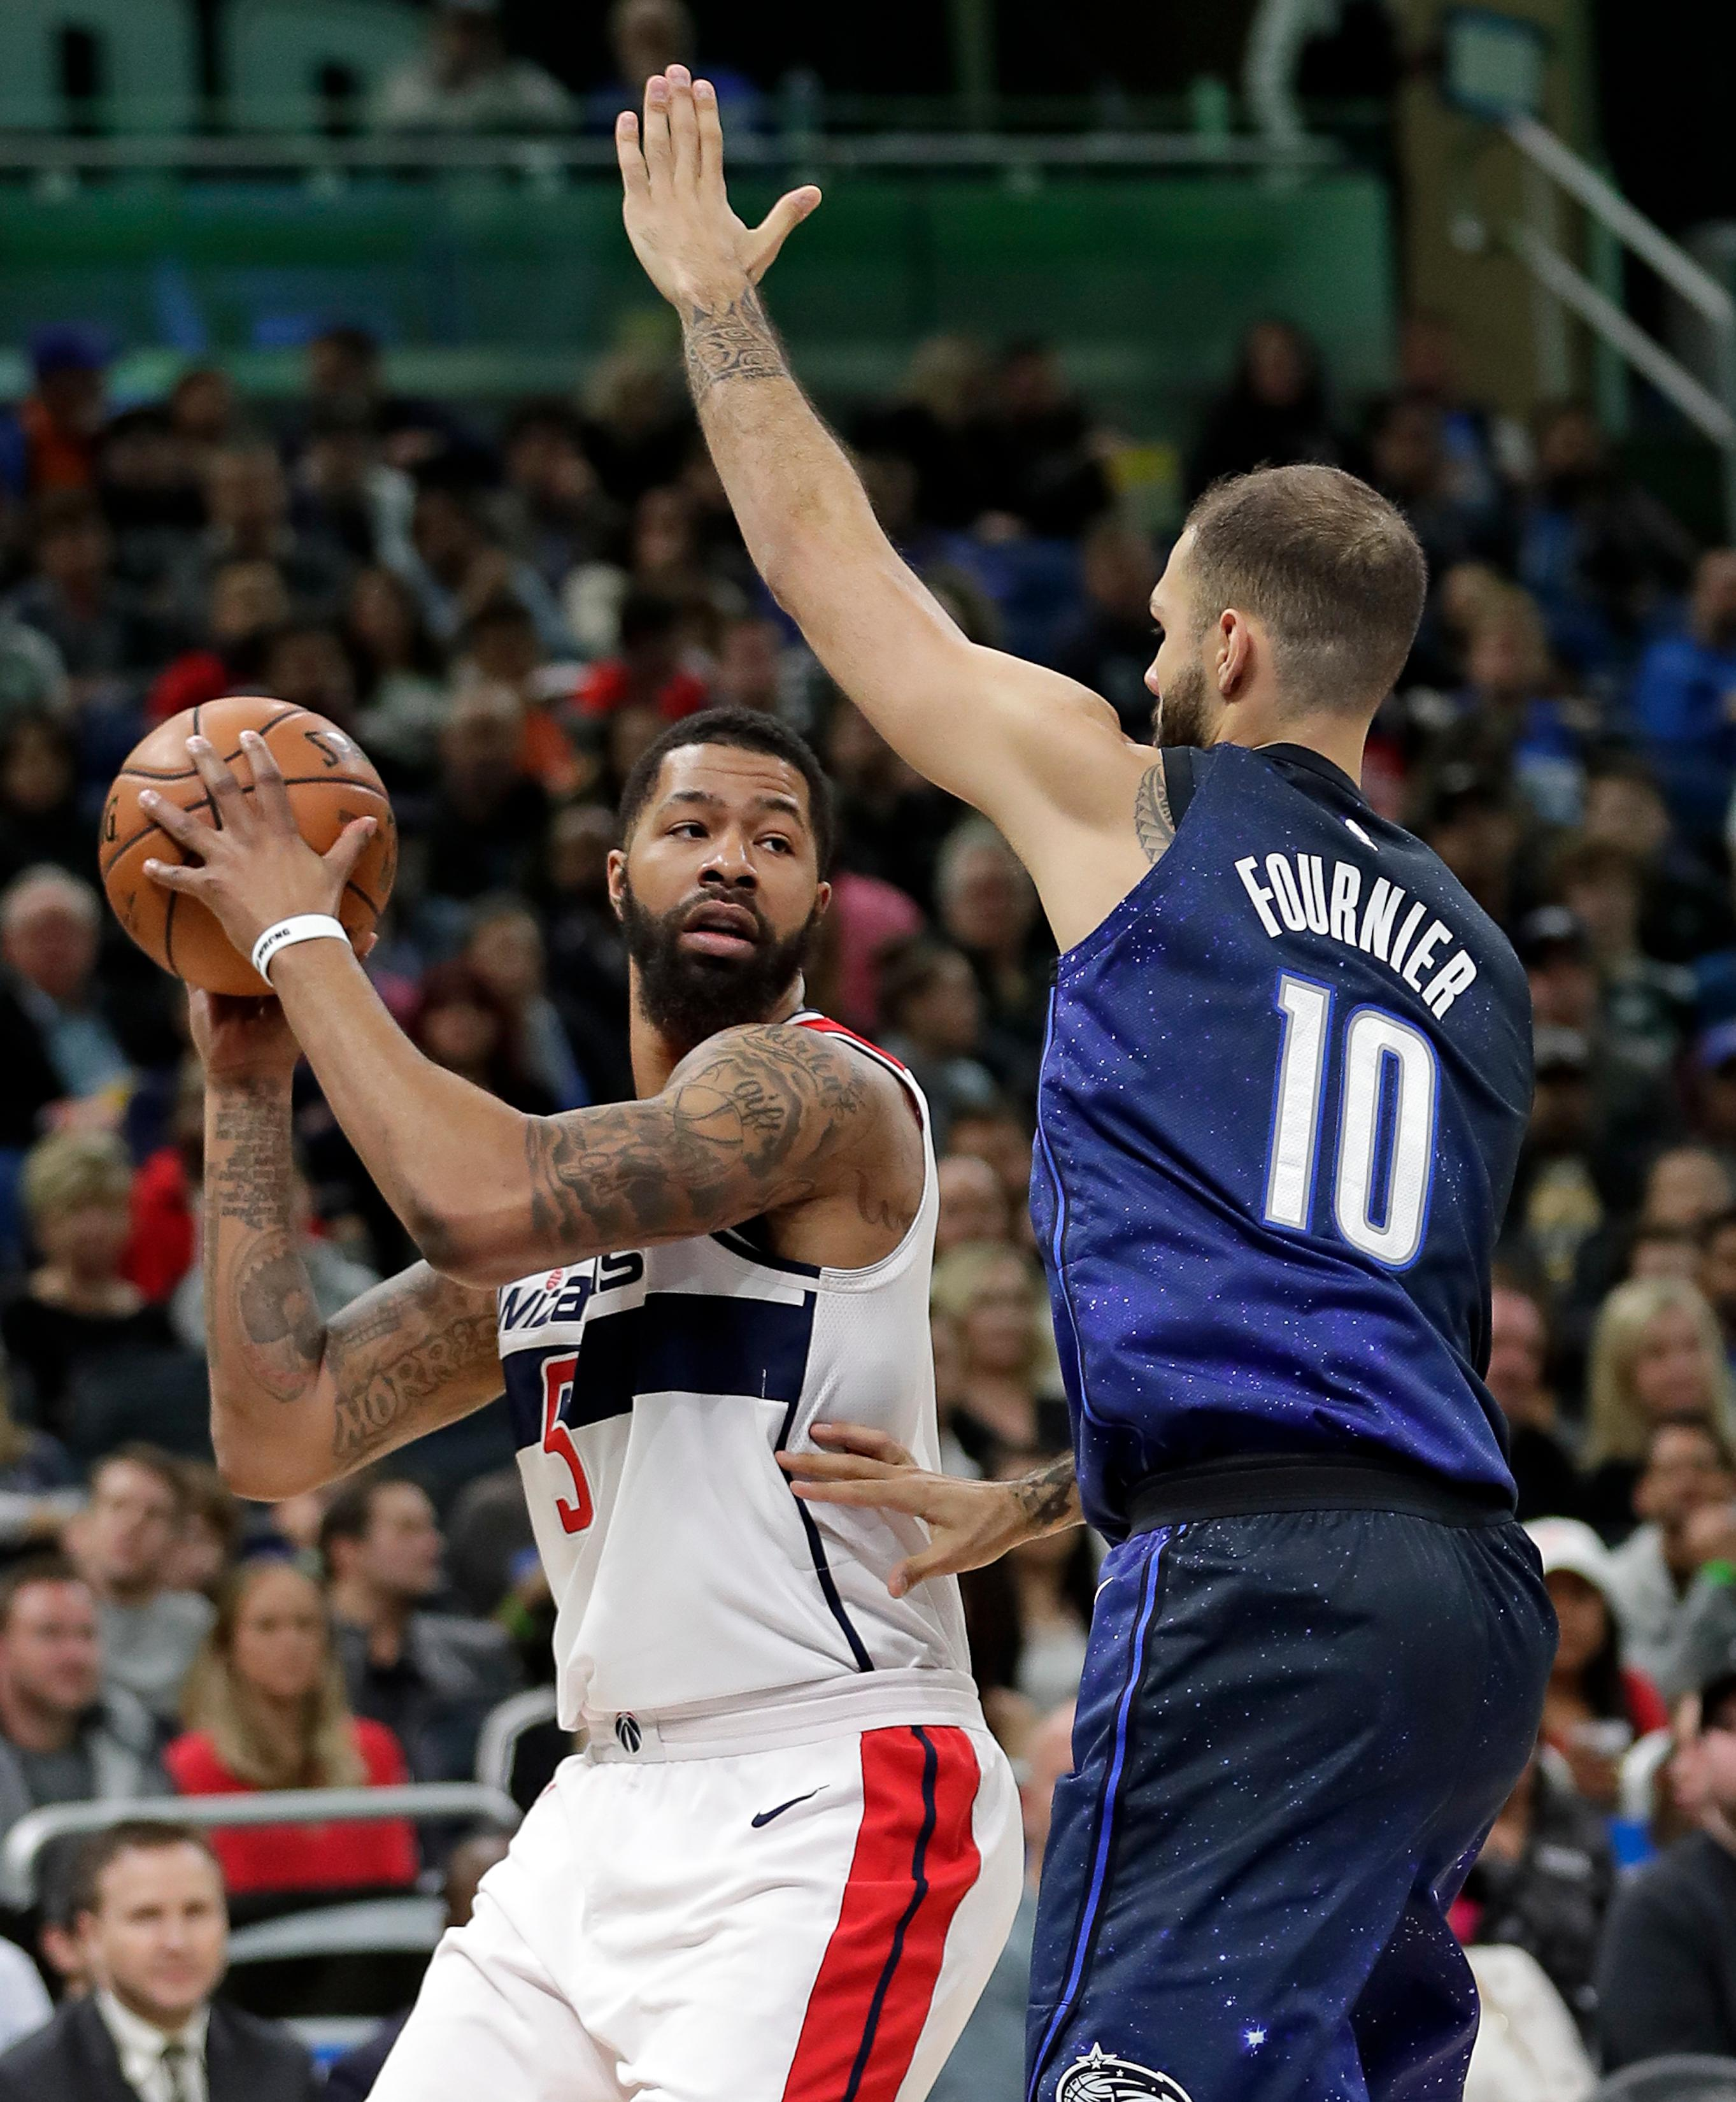 Washington Wizards' Markieff Morris, left, looks to pass the ball around Orlando Magic's Evan Fournier (10) during the first half of an NBA basketball game Saturday, Feb. 3, 2018, in Orlando, Fla. (AP Photo/John Raoux)